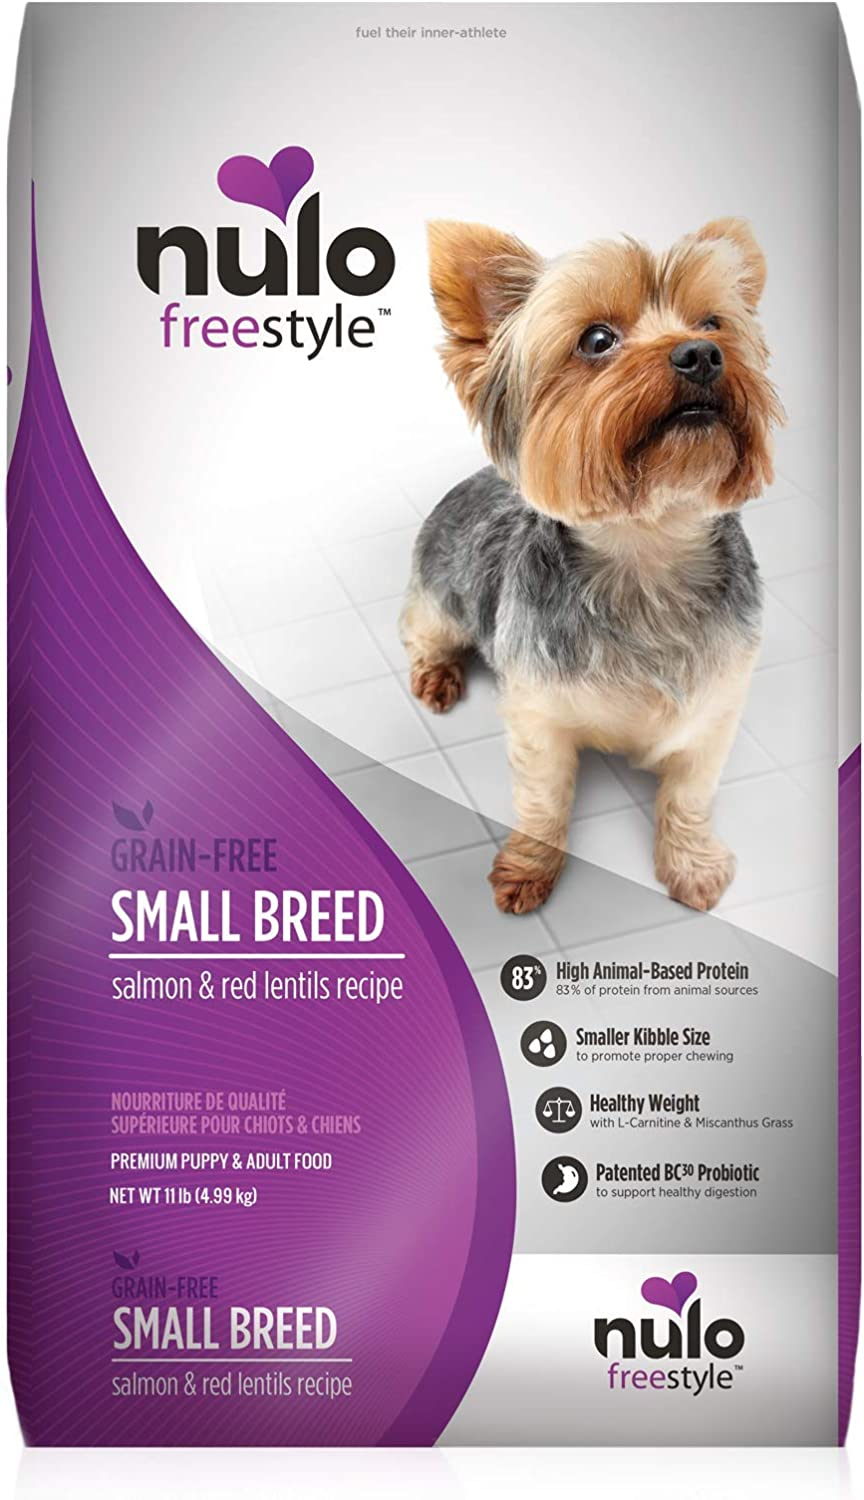 Nulo Grain Free Small Breed Dry Dog Food with BC30 Probiotic (Salmon and Red Lentils Recipe, 4.5lb Bag)